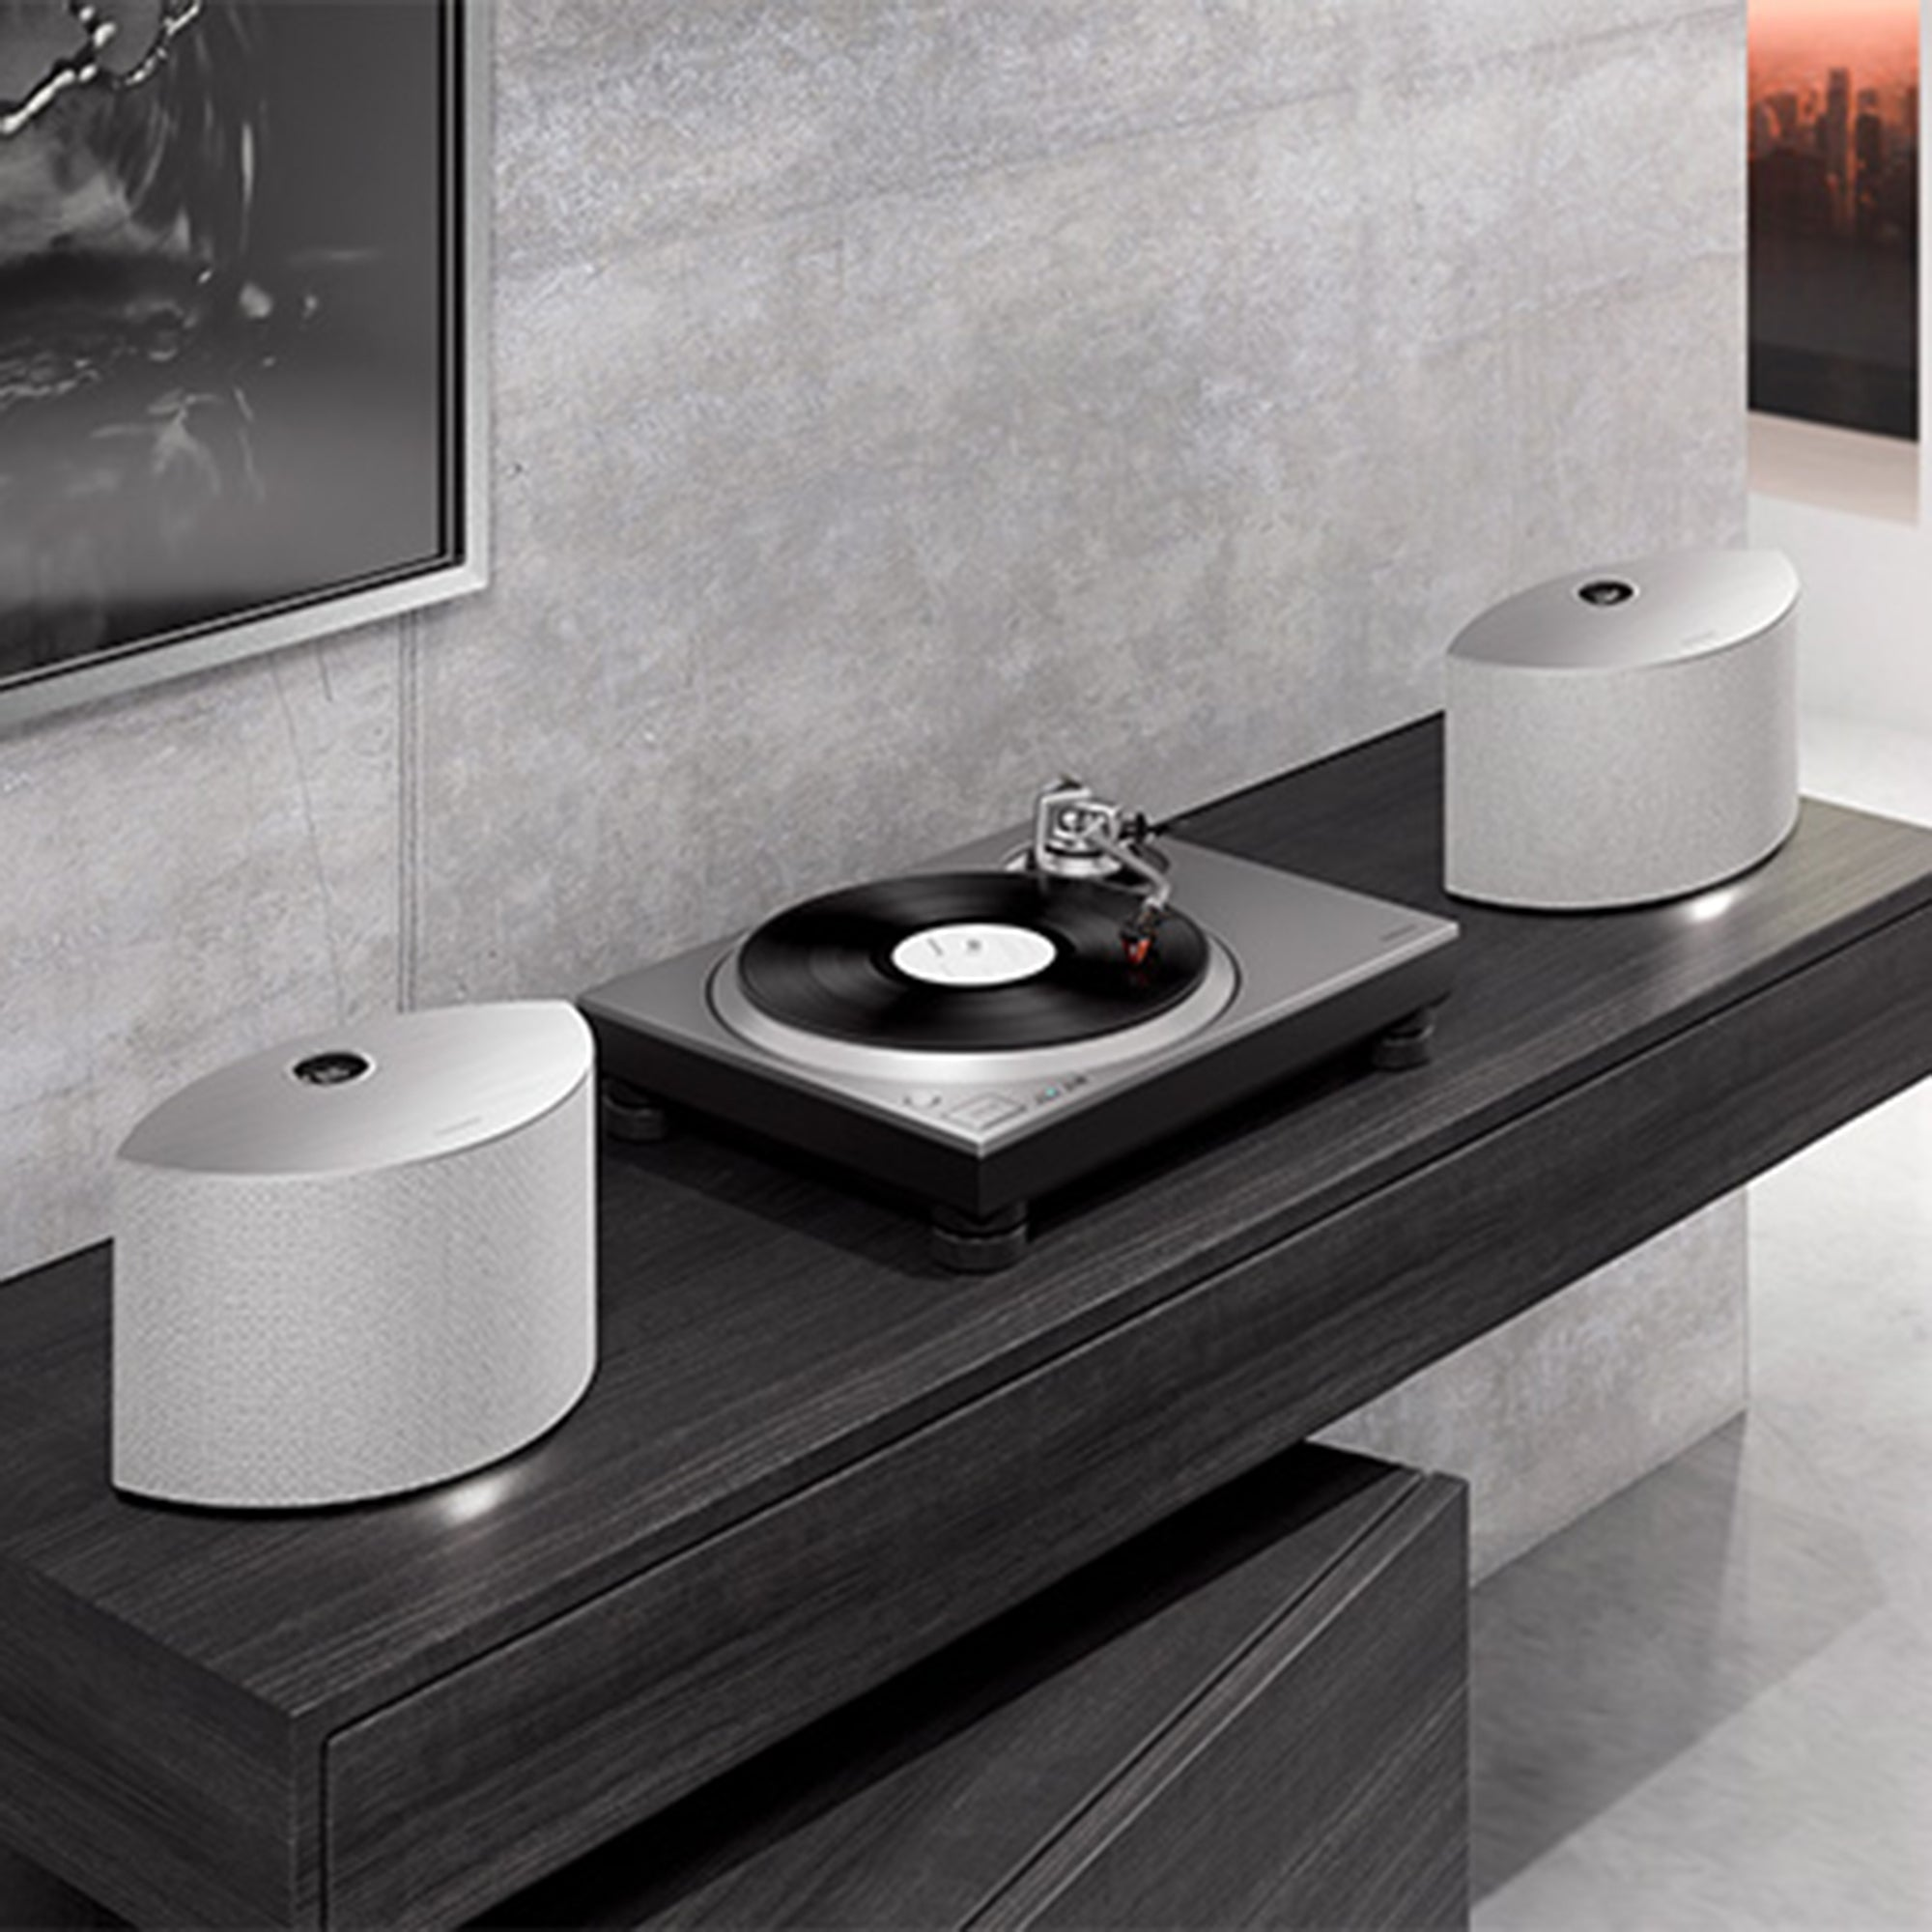 Technics OTTAVA S SC-C30 Premium Class Wireless Speaker System